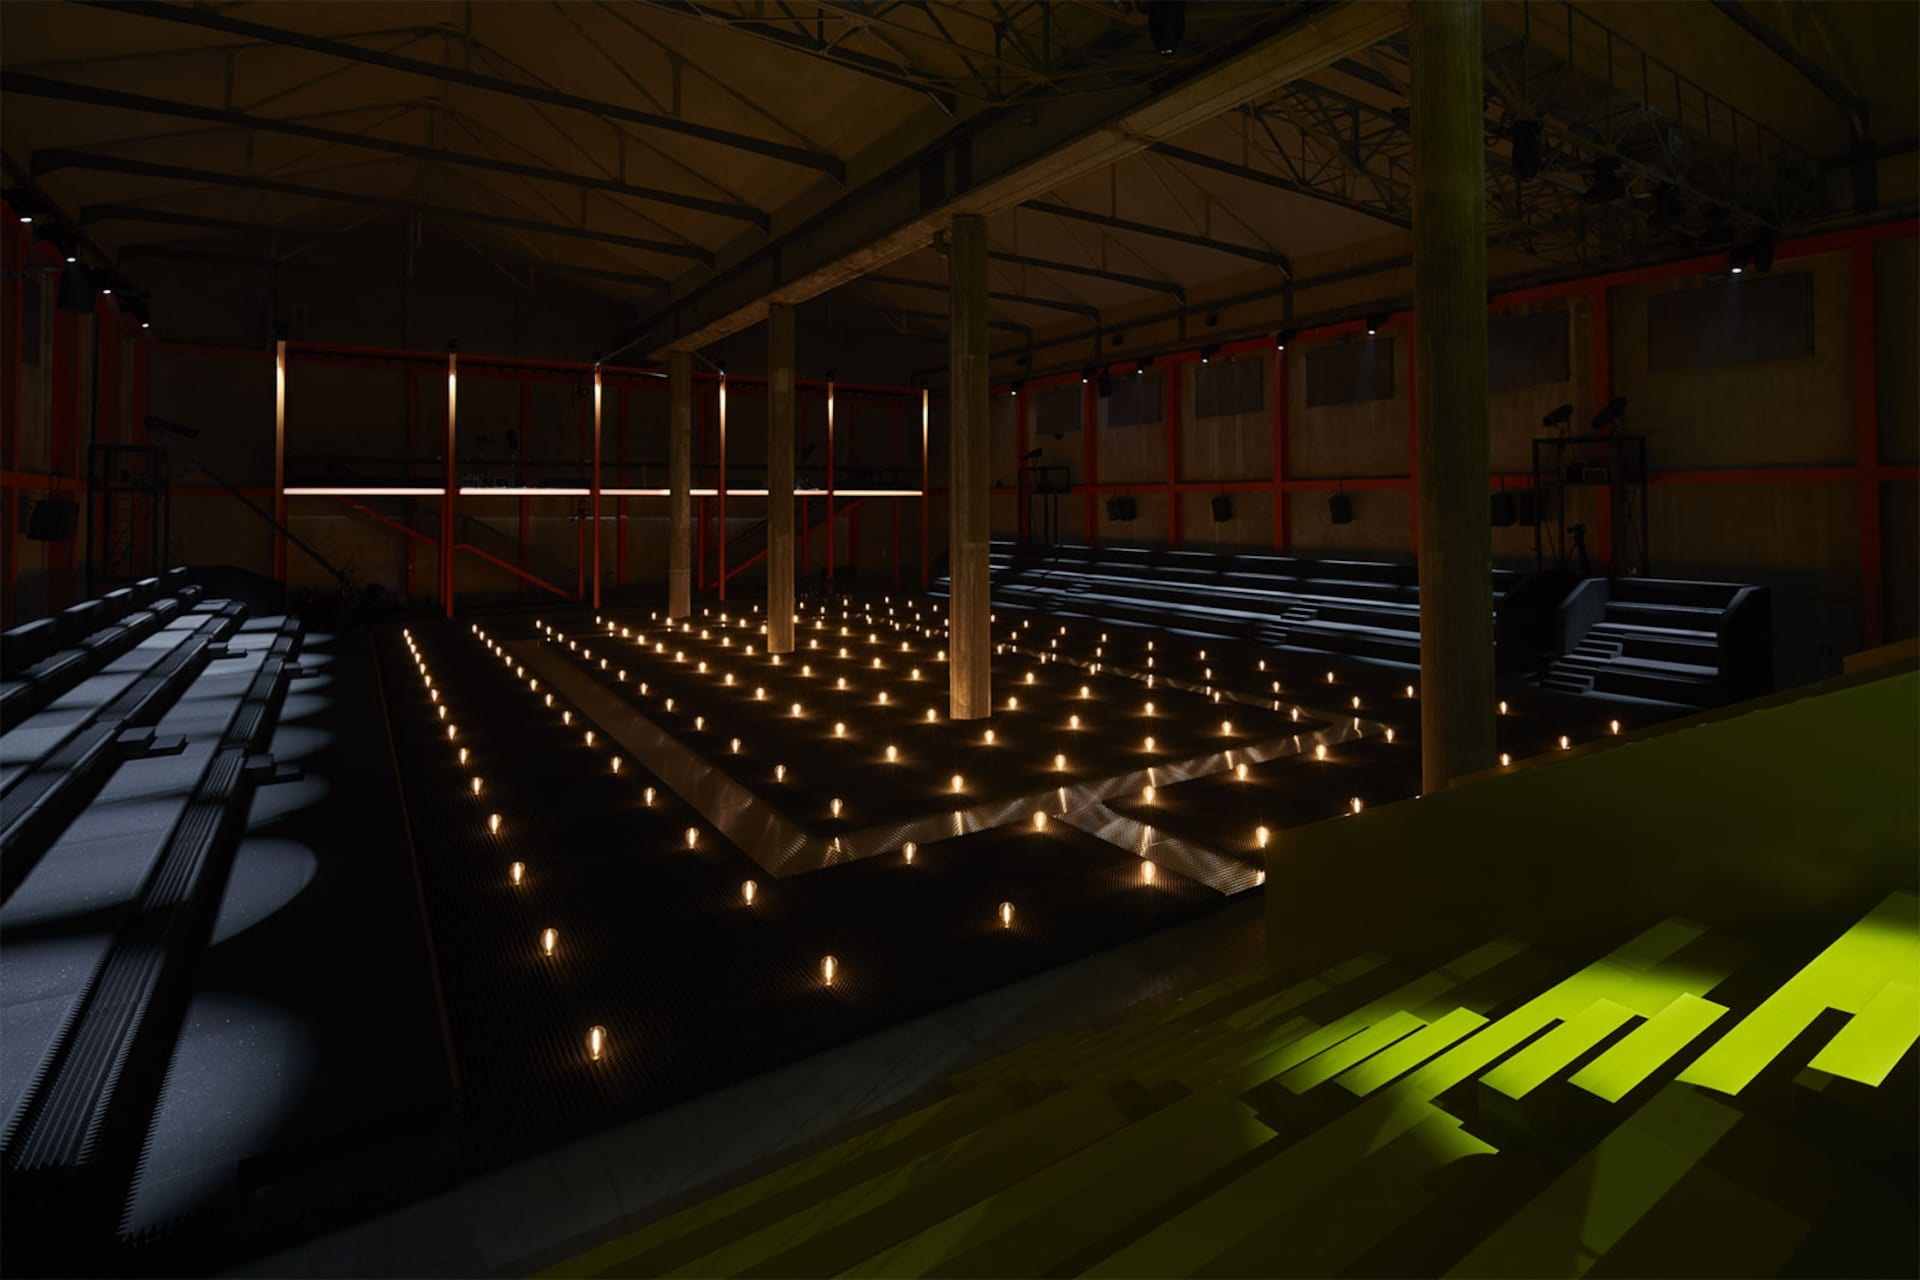 Prada Fall Winter 2019 Men's and Women's fashion show space detail 12 For the 2019 Fall/Winter Prada shows – both Men's and Women's, AMO has created a theatrical field of lights in the grand hall of the Deposito, the multifunctional venue for performances that is part of the Fondazione Prada complex.